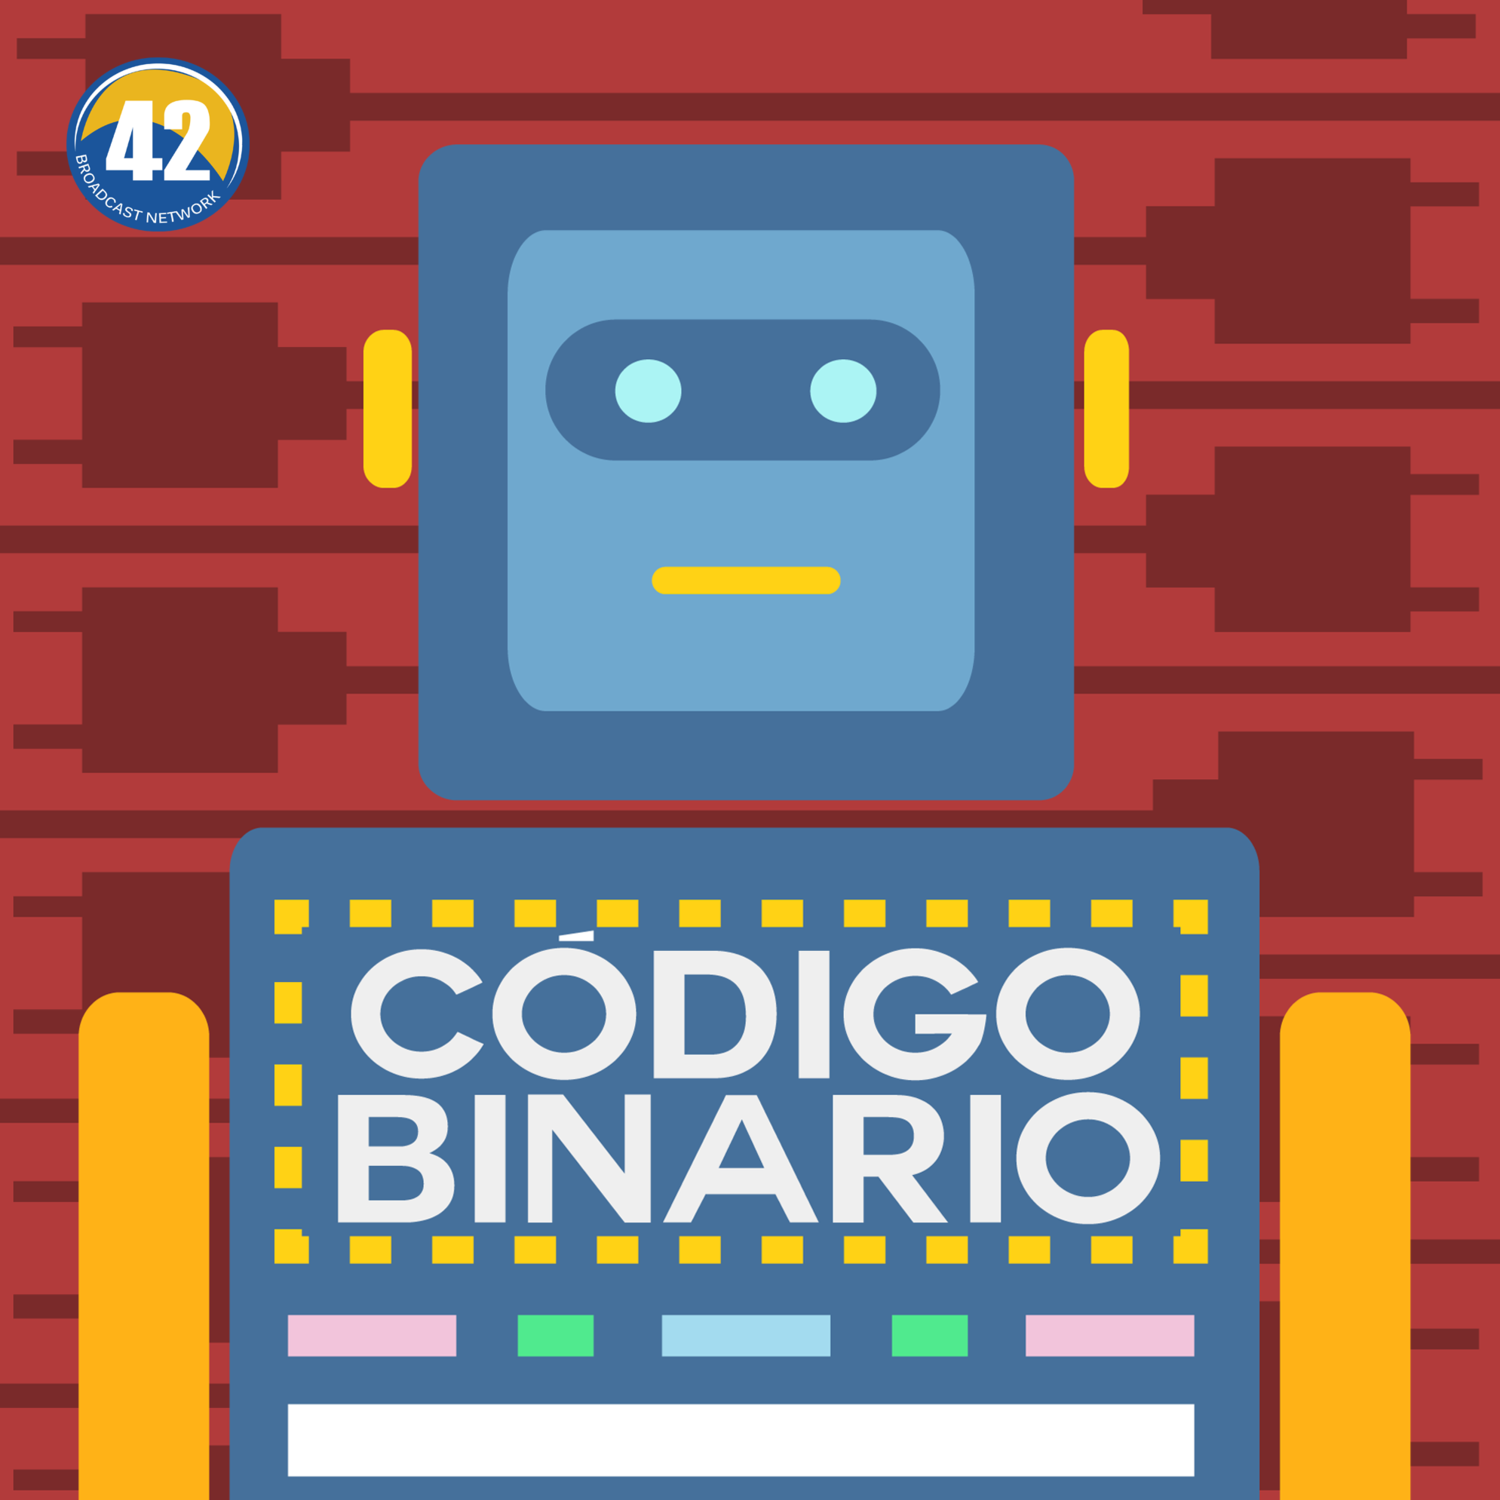 Código Binario - 42 Broadcast Network